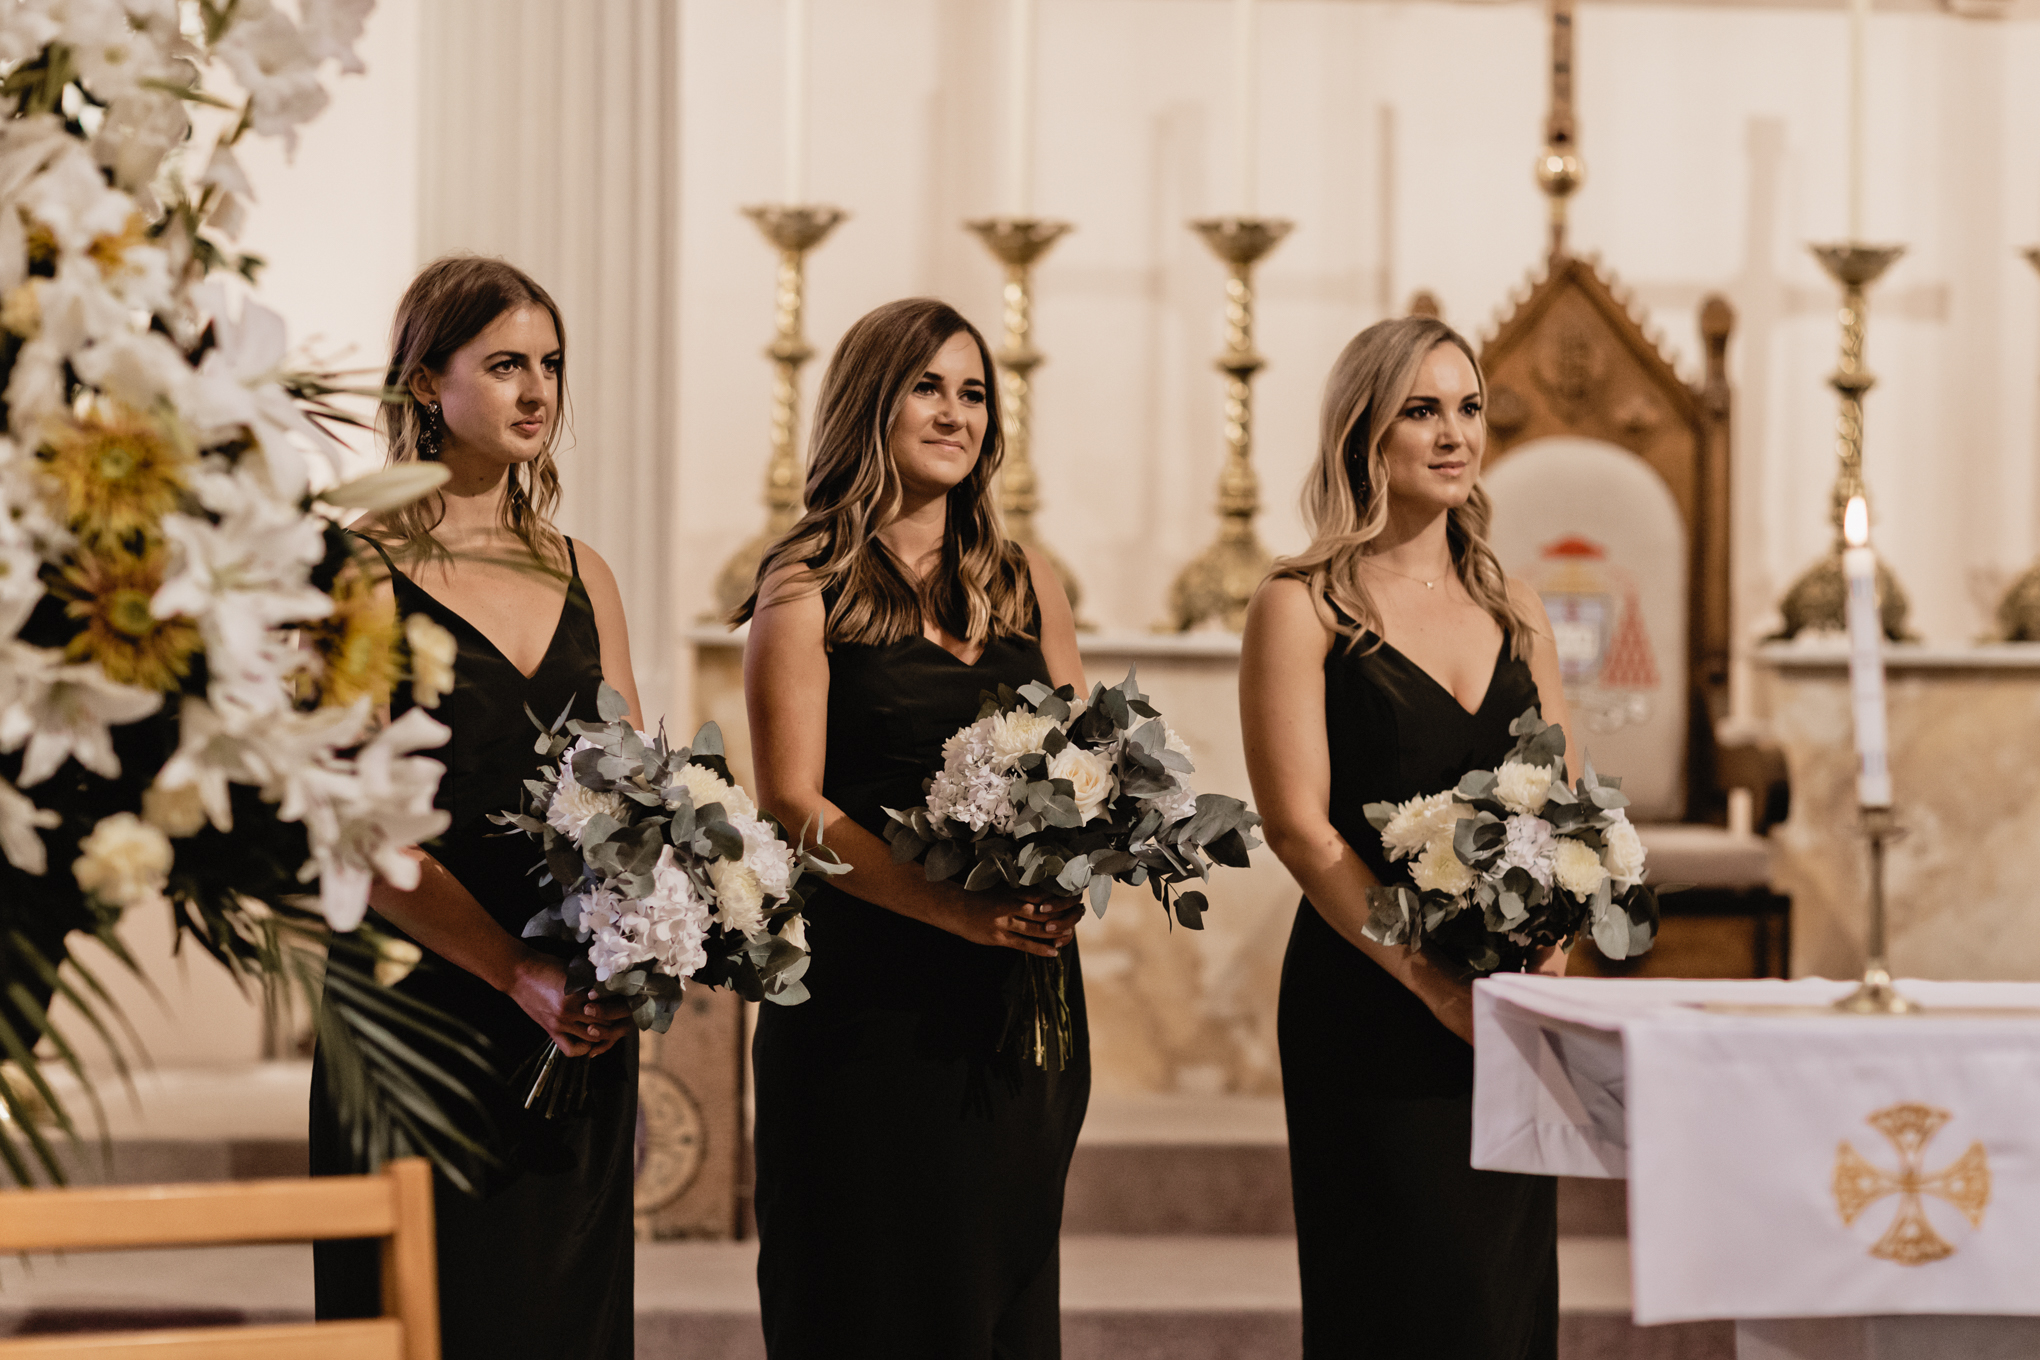 Categories: Weddings-Real Wedding: Charlotte & Simon by Lucy Li Photography